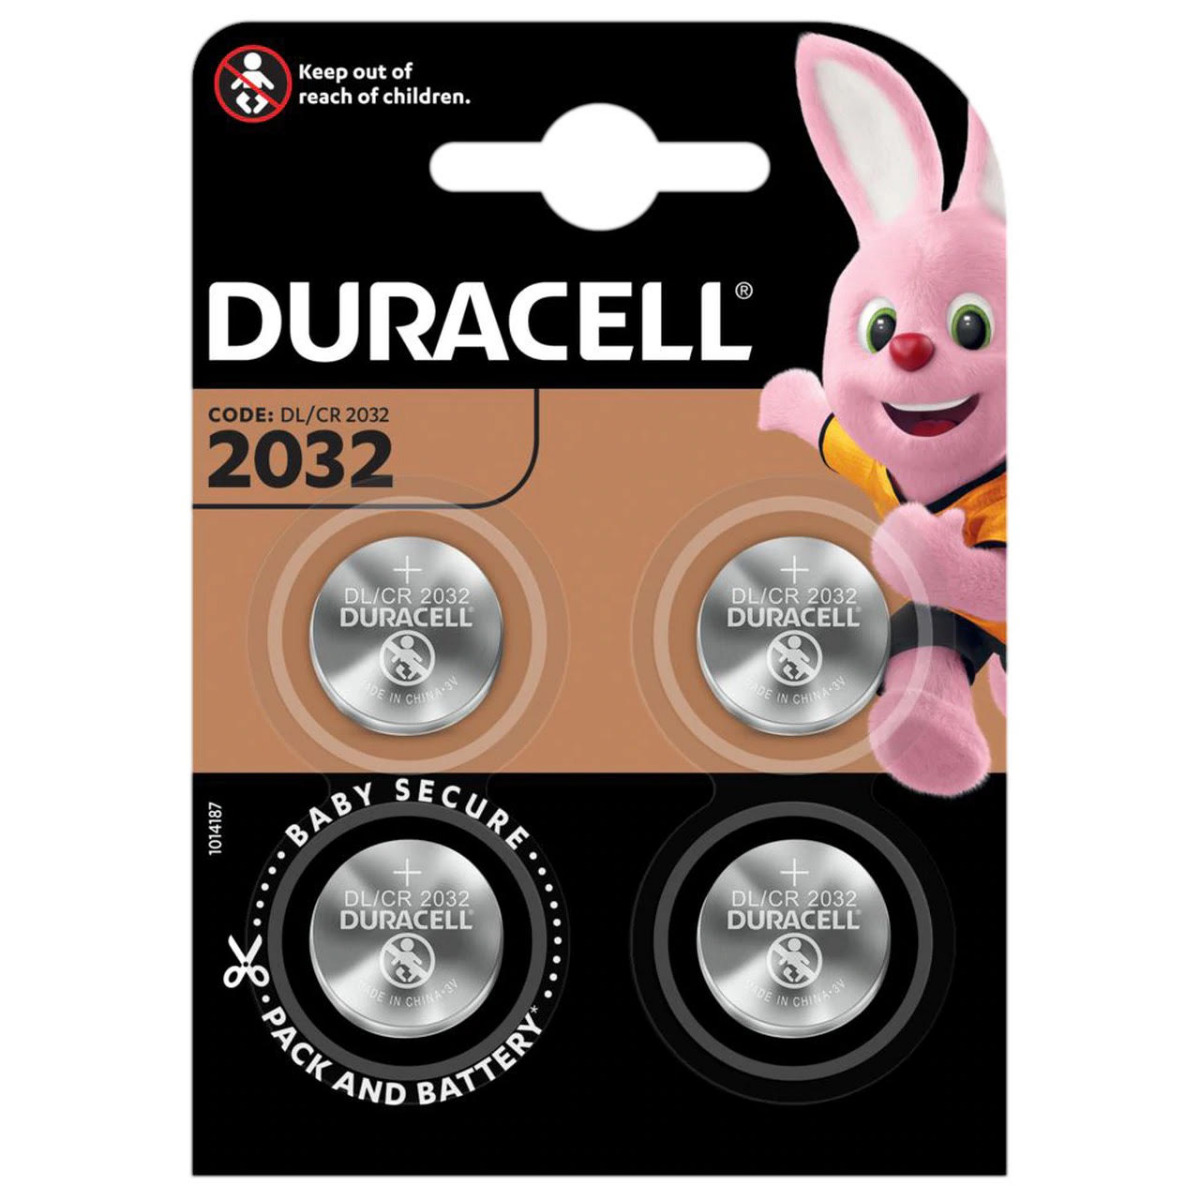 Duracell CR2032 DL2032 Coin Cell Lithium Batteries   4 Pack